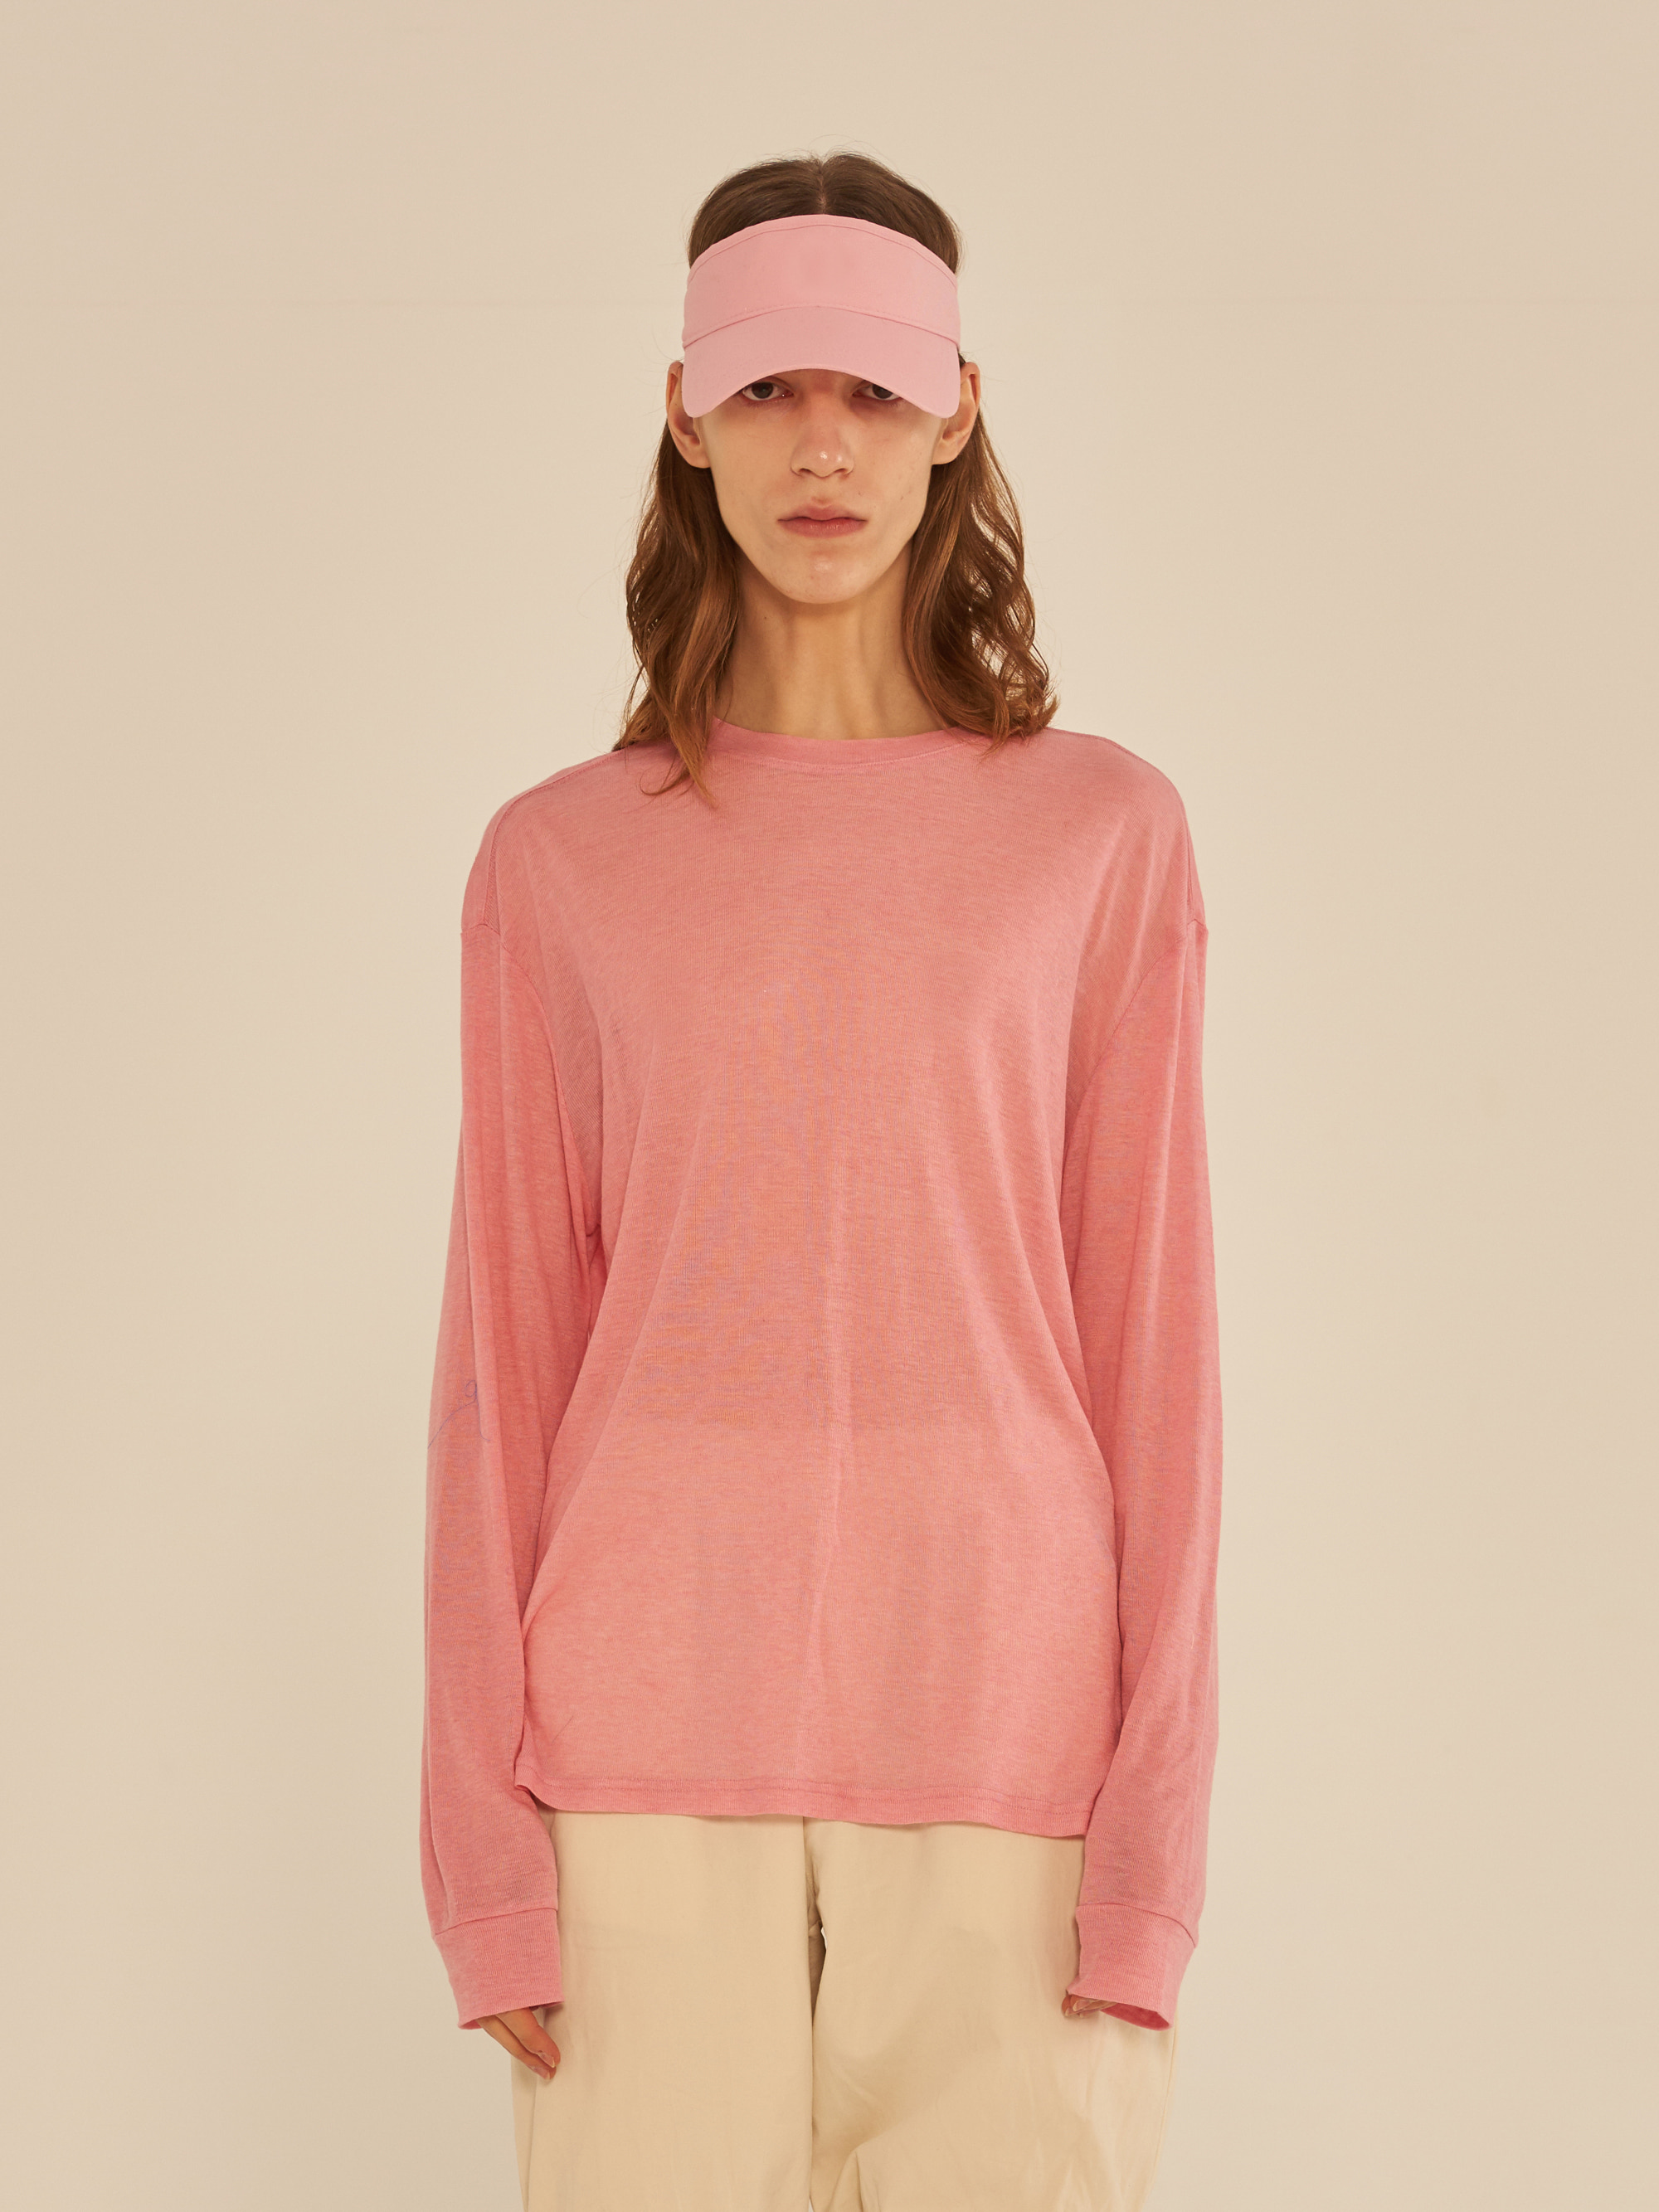 LONG SLEEVE SEE-THROUGH T-SHIRT (PINK)